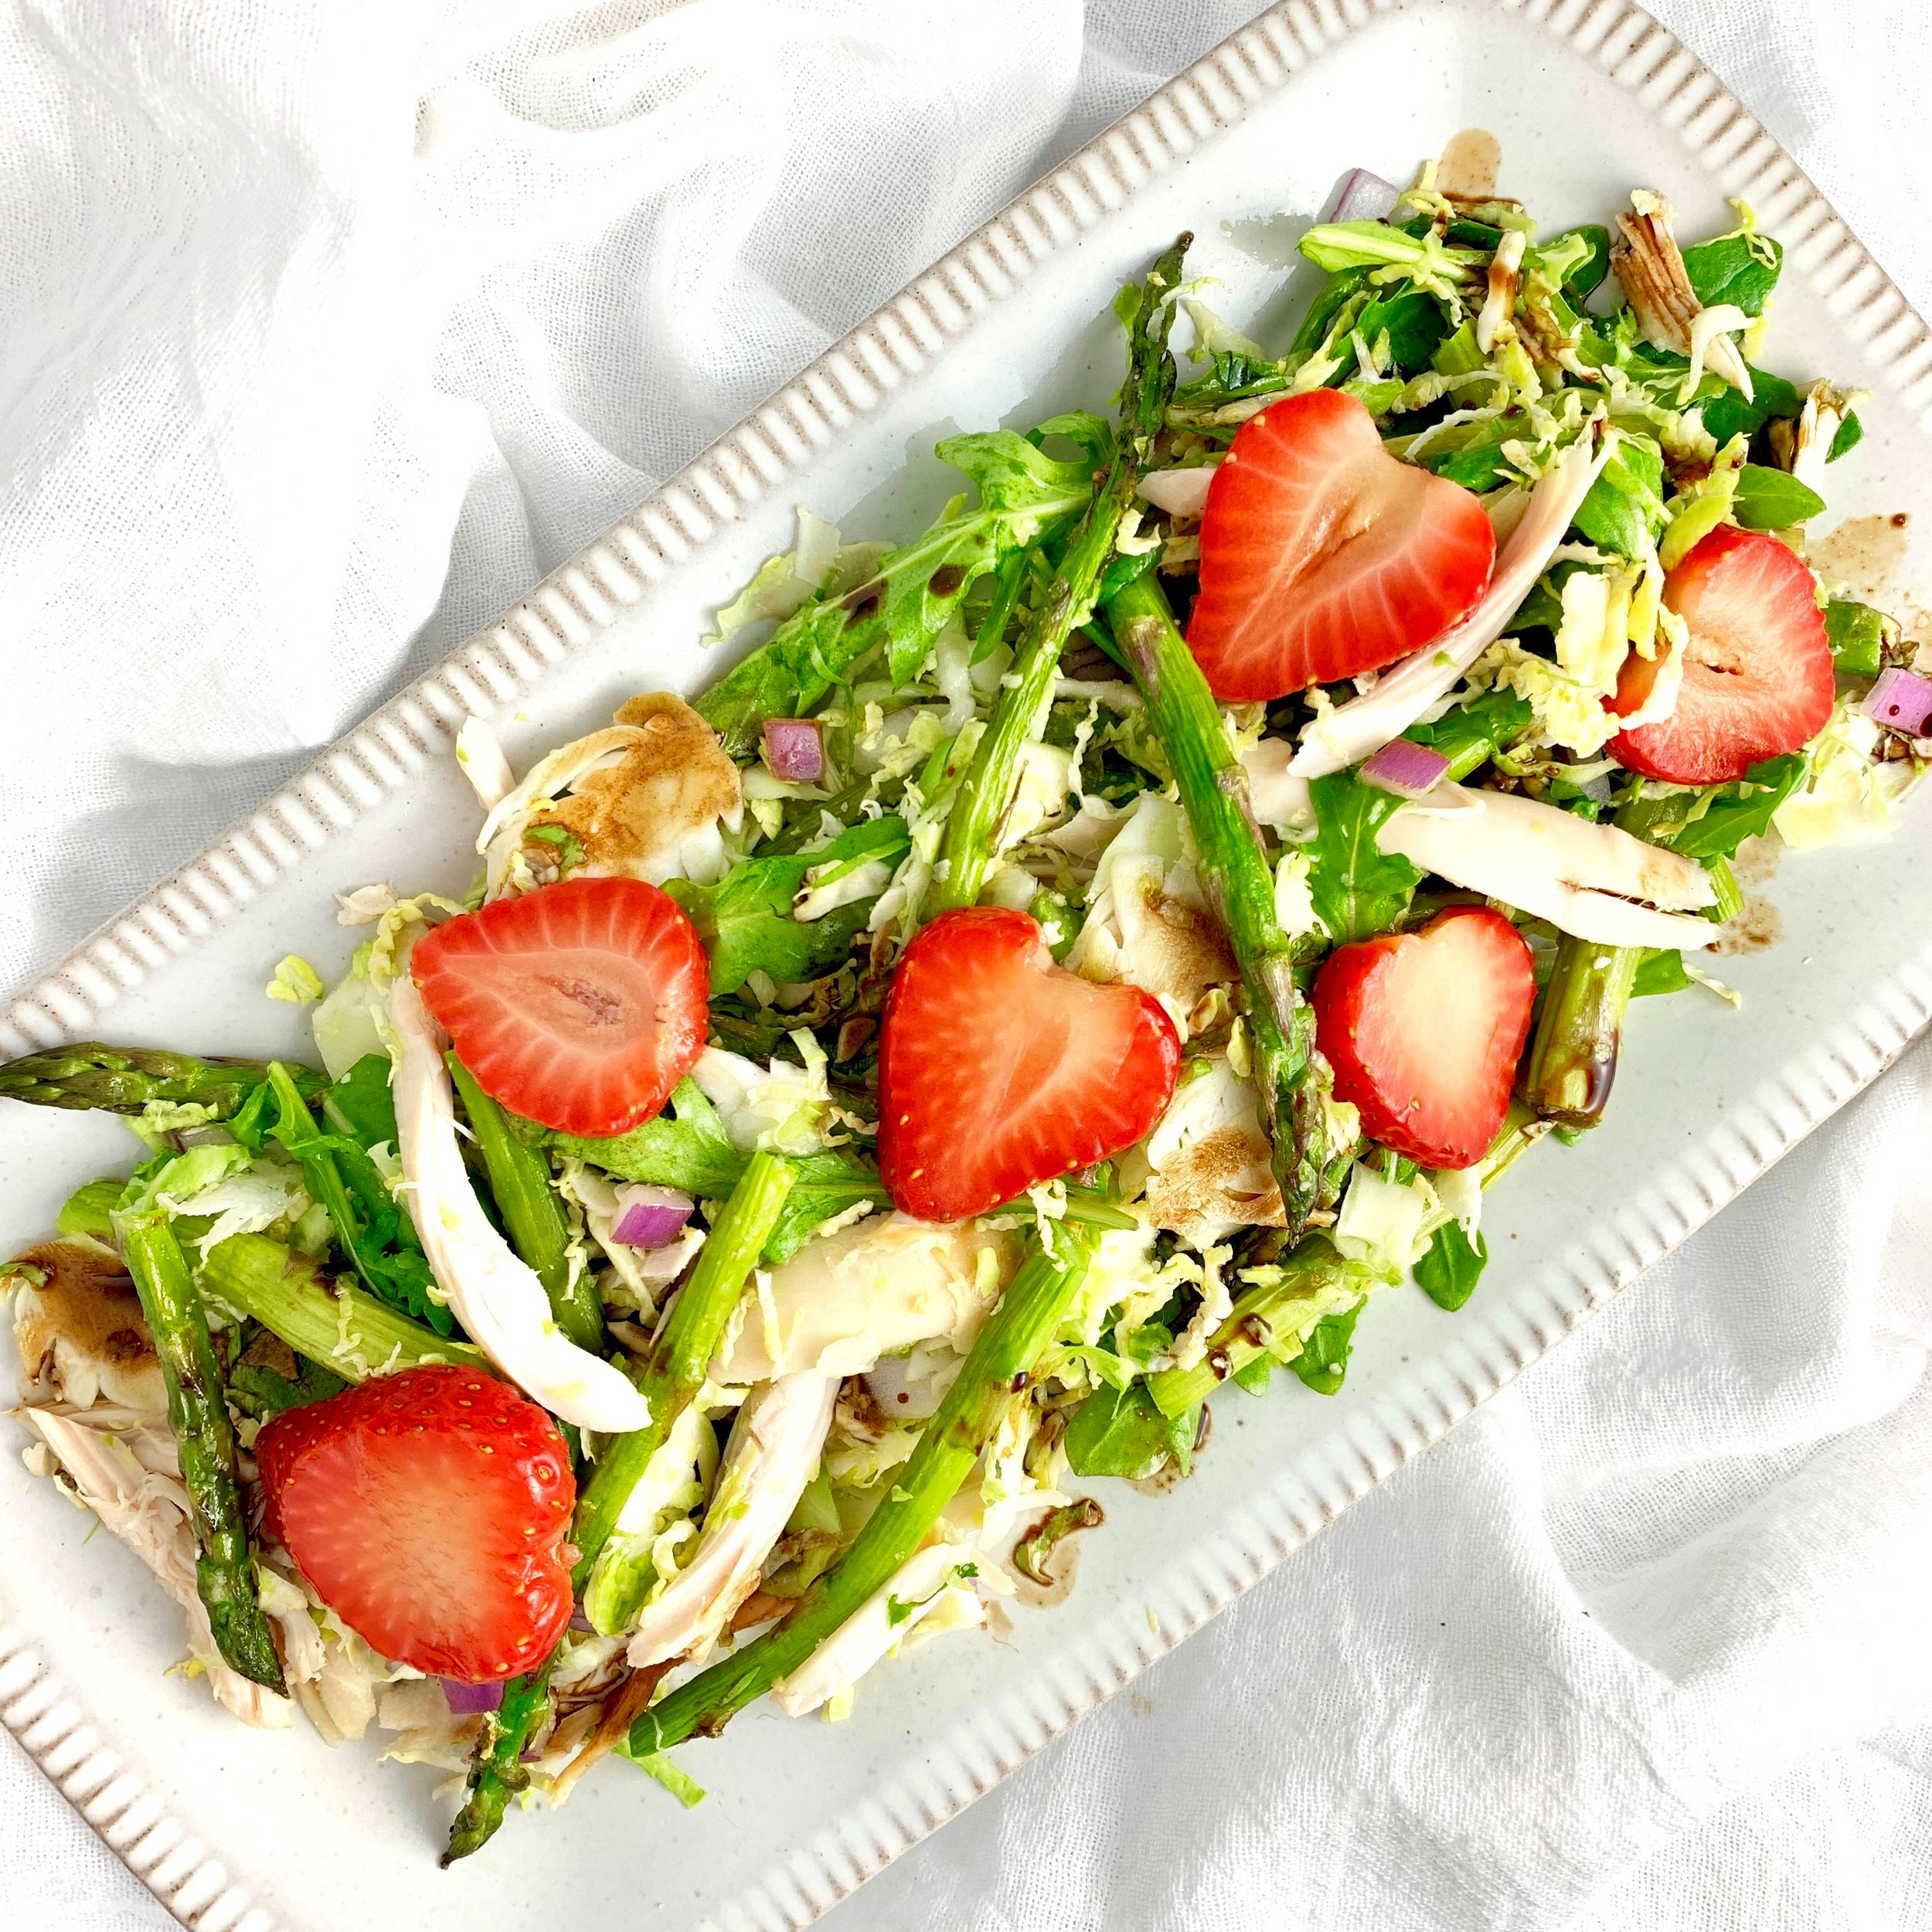 Roasted+Asparagus+Salad+with+Pickled+Strawberries.jpg